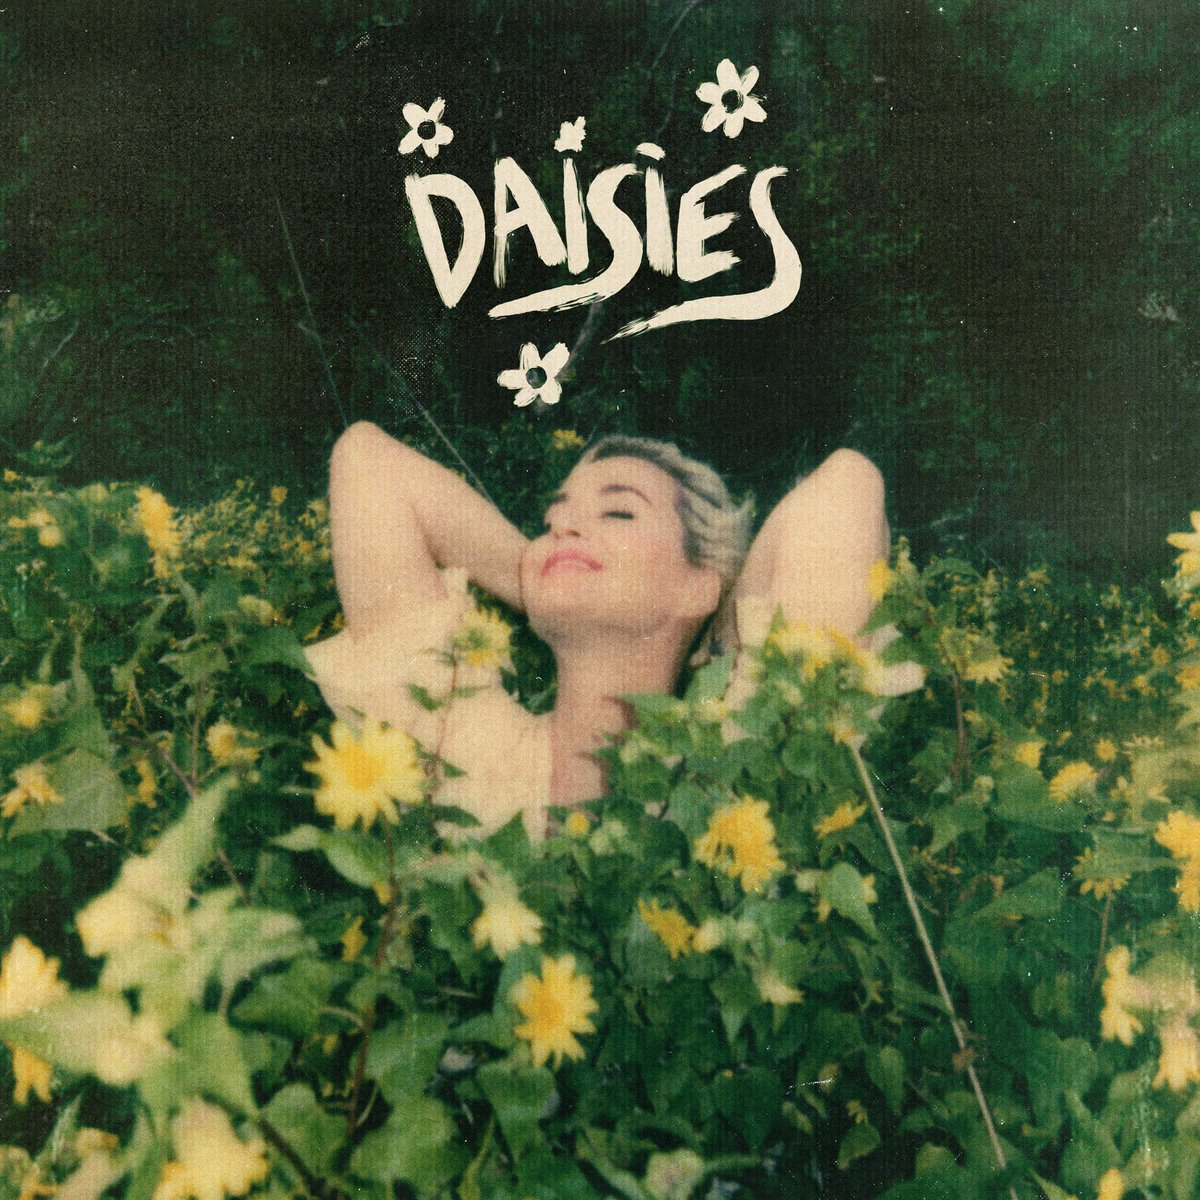 🌼 The first single from #KP5 is called #DAISIES and she's coming MAY 15, 2020 🌼  THE MUSIC MUST GO ON https://t.co/lI71mjIm0J https://t.co/cqwZnysWPu